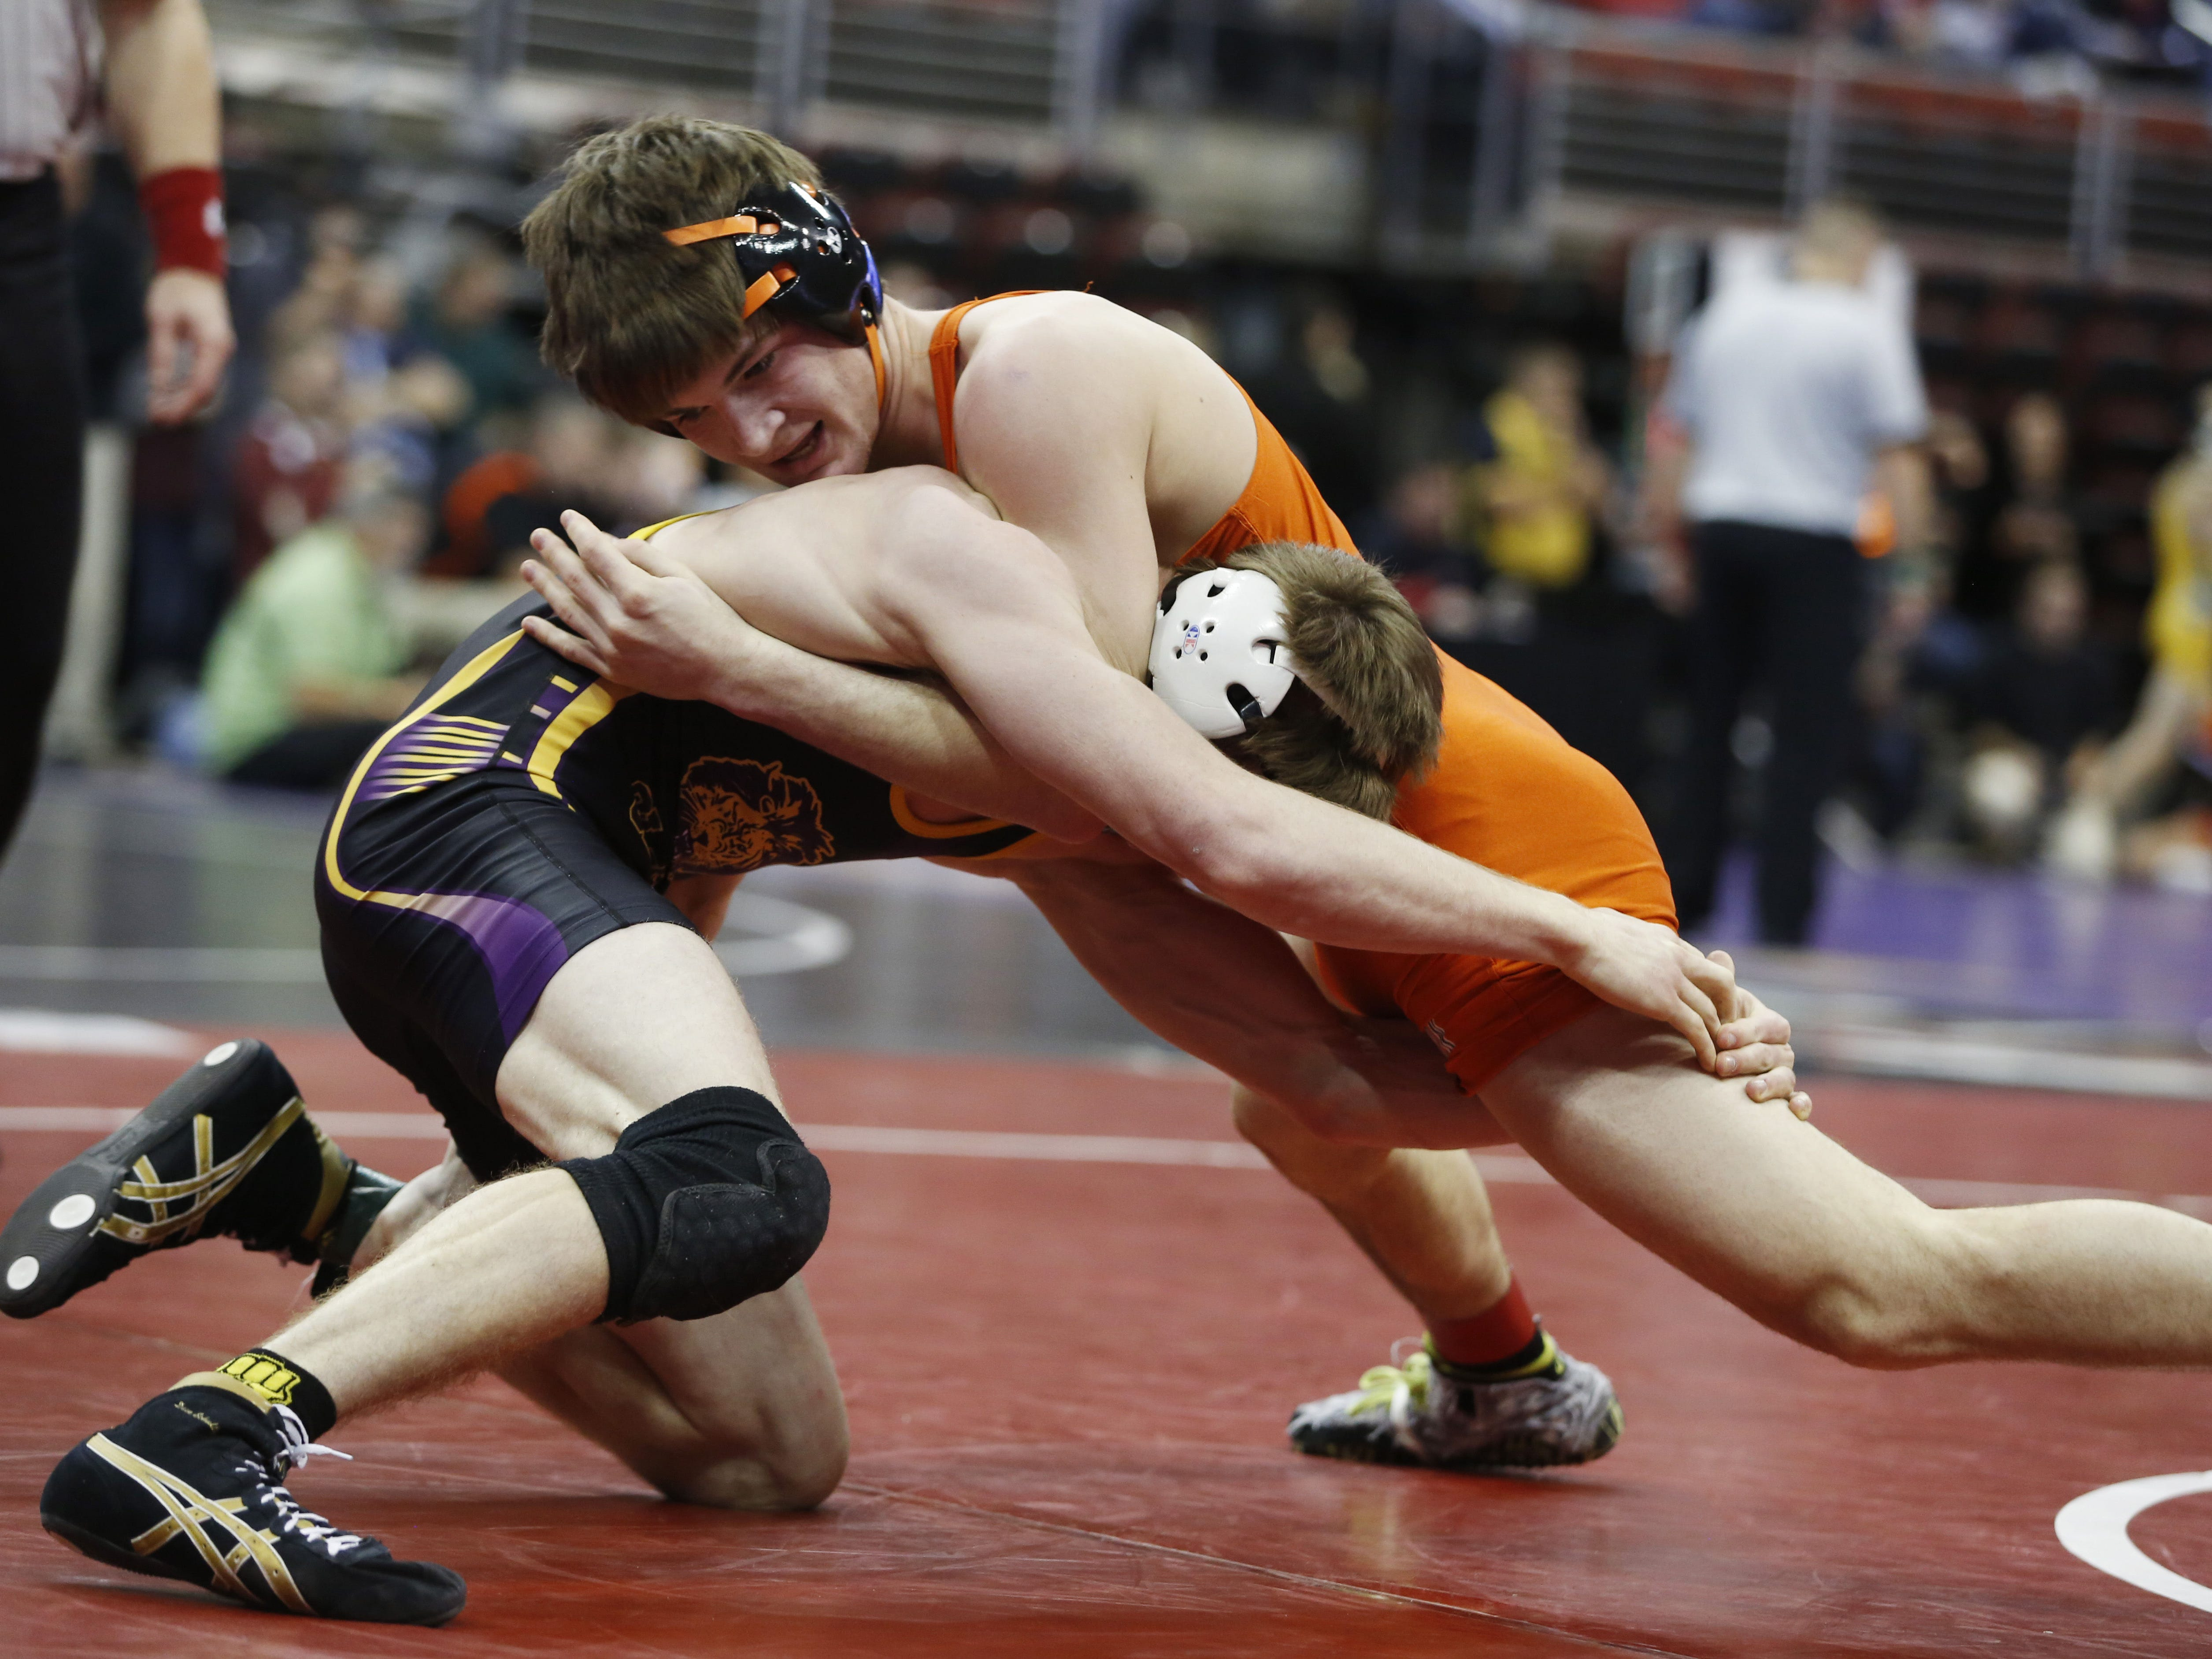 Solon's Cole Fritz (top) wrestles with Central Lyon's Colby McIntire in their Class 2A, 138 pound first-round match at the state wrestling tournament on Thursday